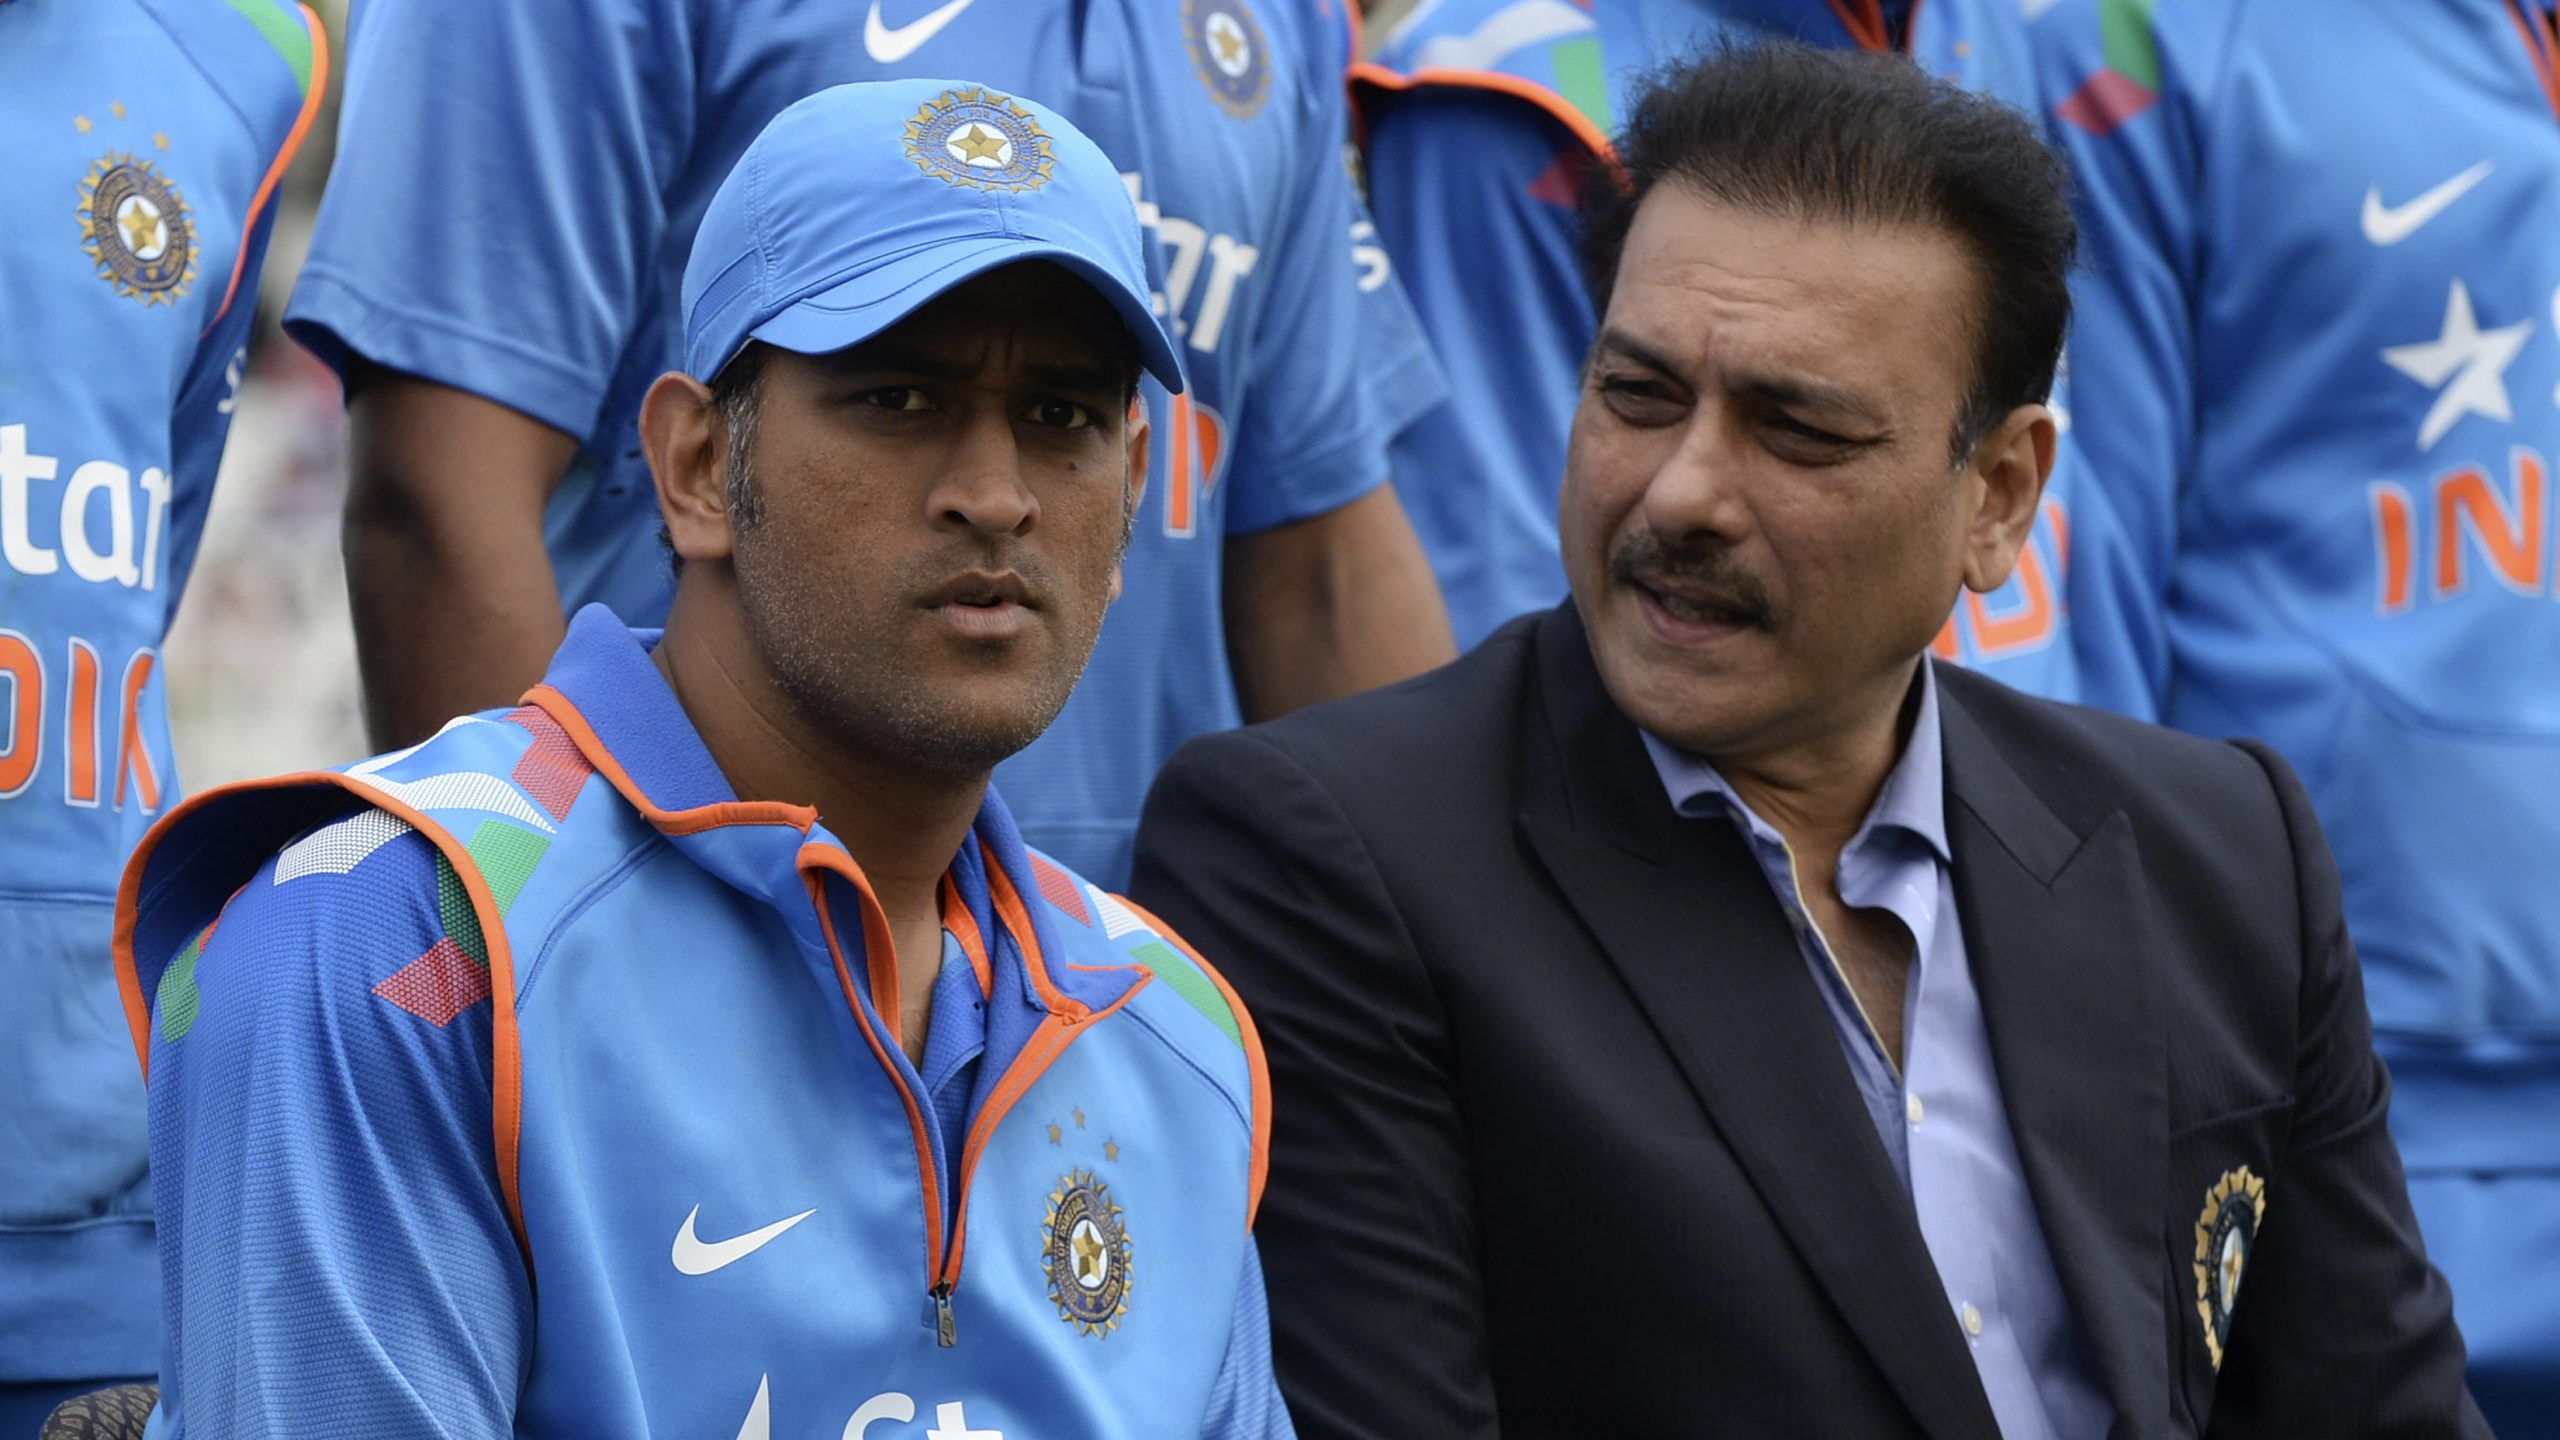 MS Dhoni and Ravi Shastri (REUTERS/Philip Brown (BRITAIN - Tags: SPORTS CRICKET)